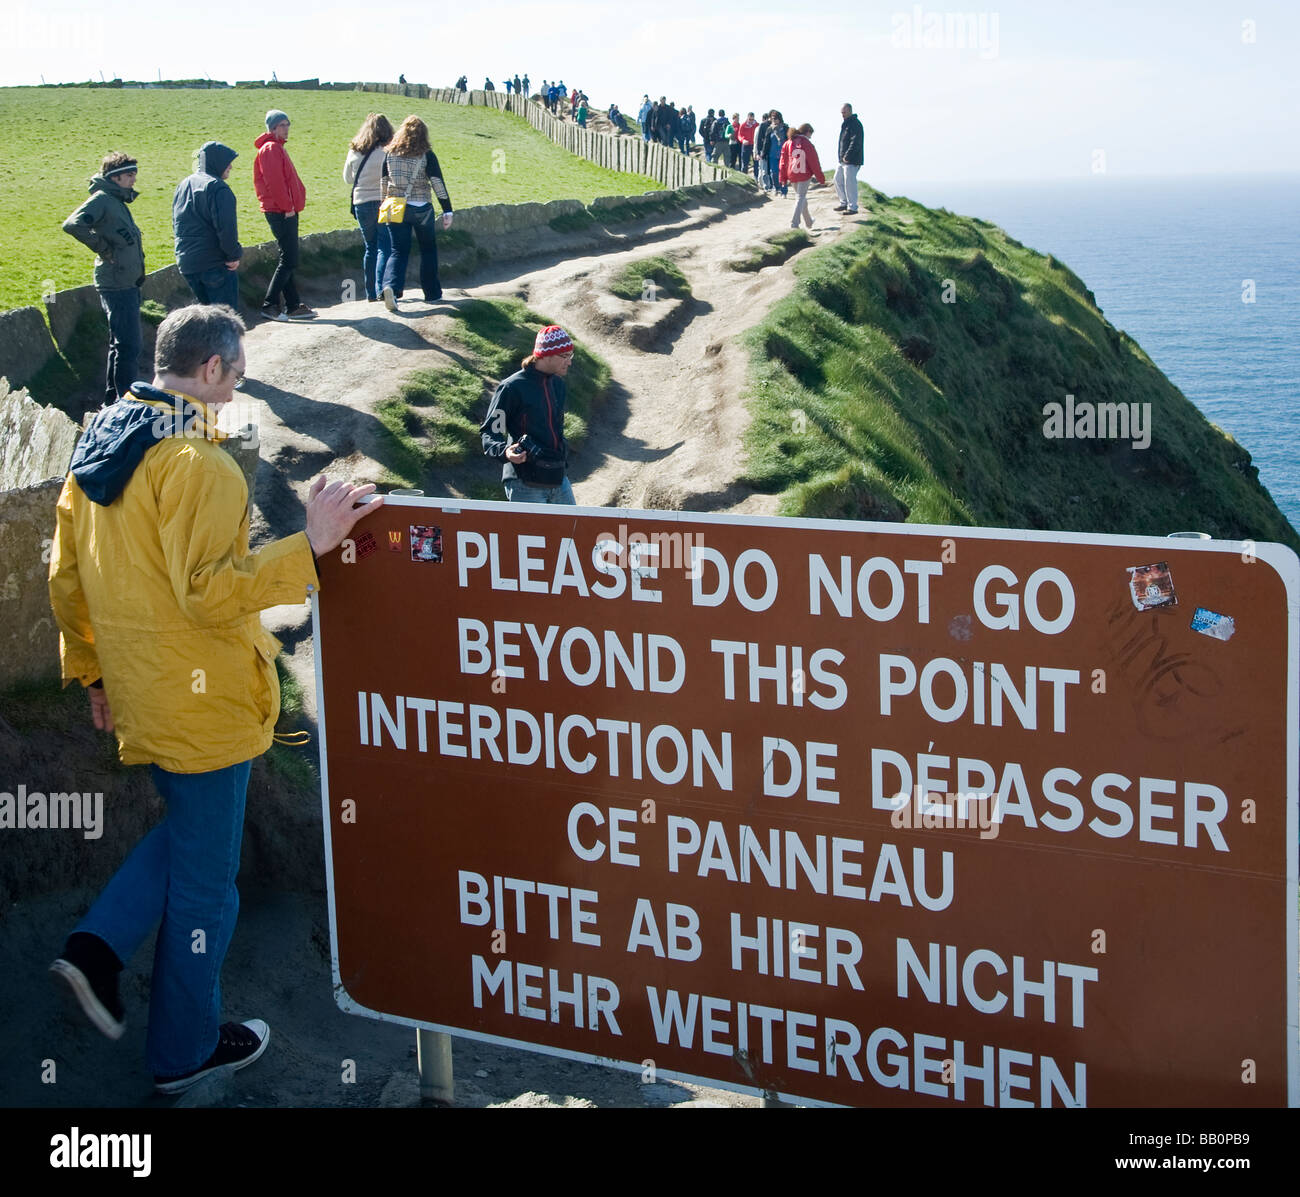 The sign may say Bitte ab jier nicht mehr weitergehen but no one seems to be able to read Cliffs Of Moher Ireland - Stock Image